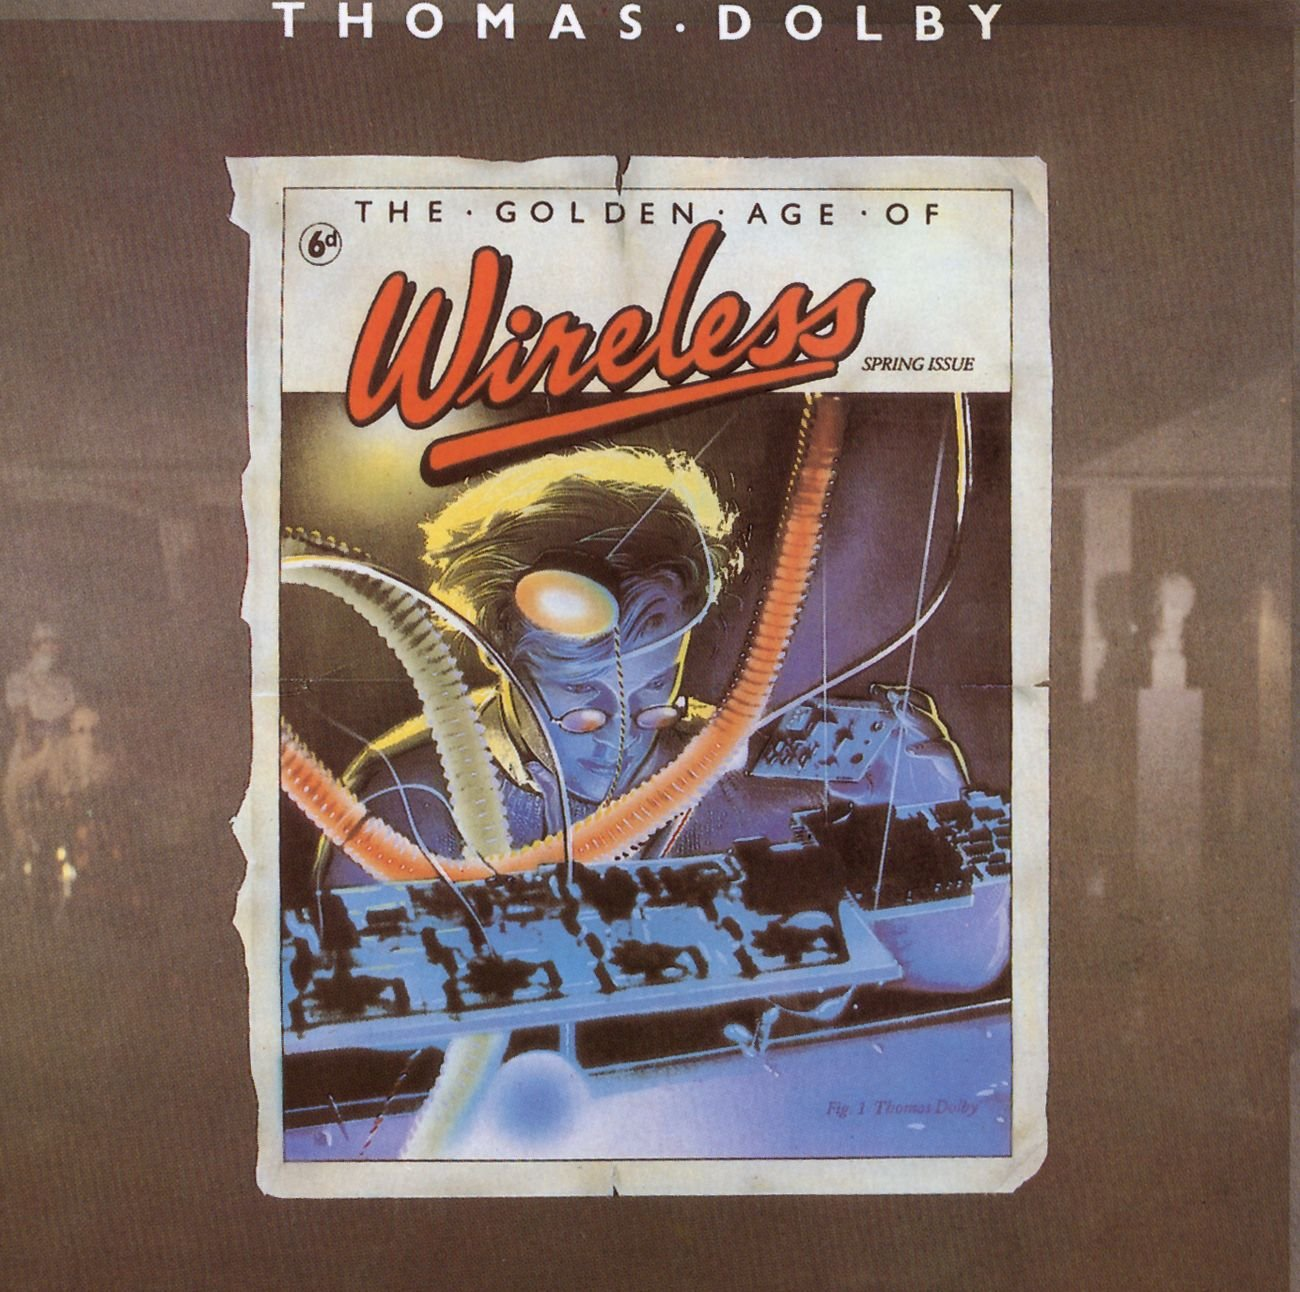 thomas dolby, classic review, review, the golden age of wireless, pop, Indie, kmmr, kmmreview